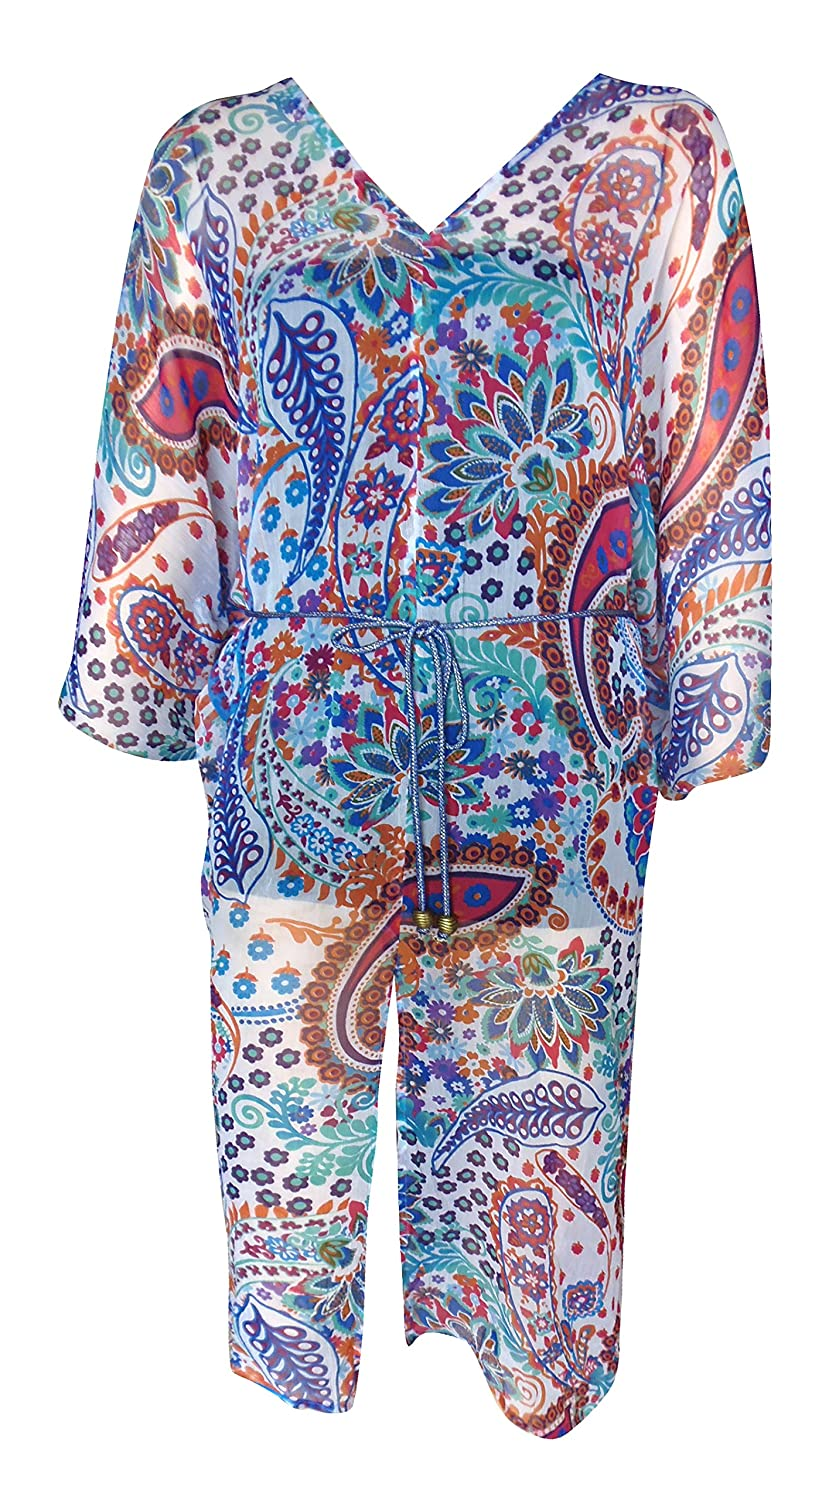 SUNROSE Multicolor Printed Beach Kaftan Caftan Cover up 610